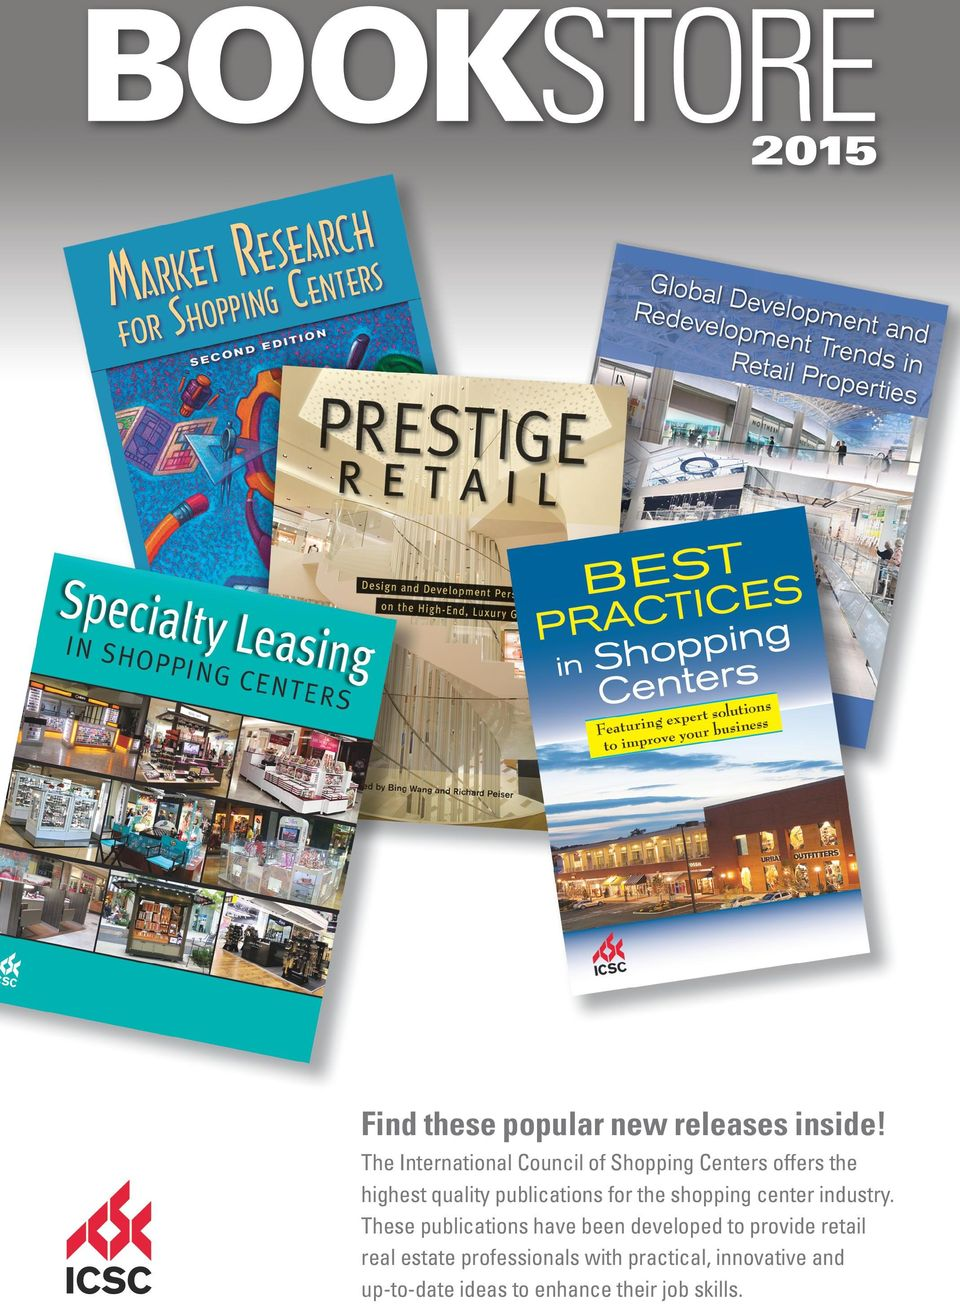 publications for the shopping center industry.